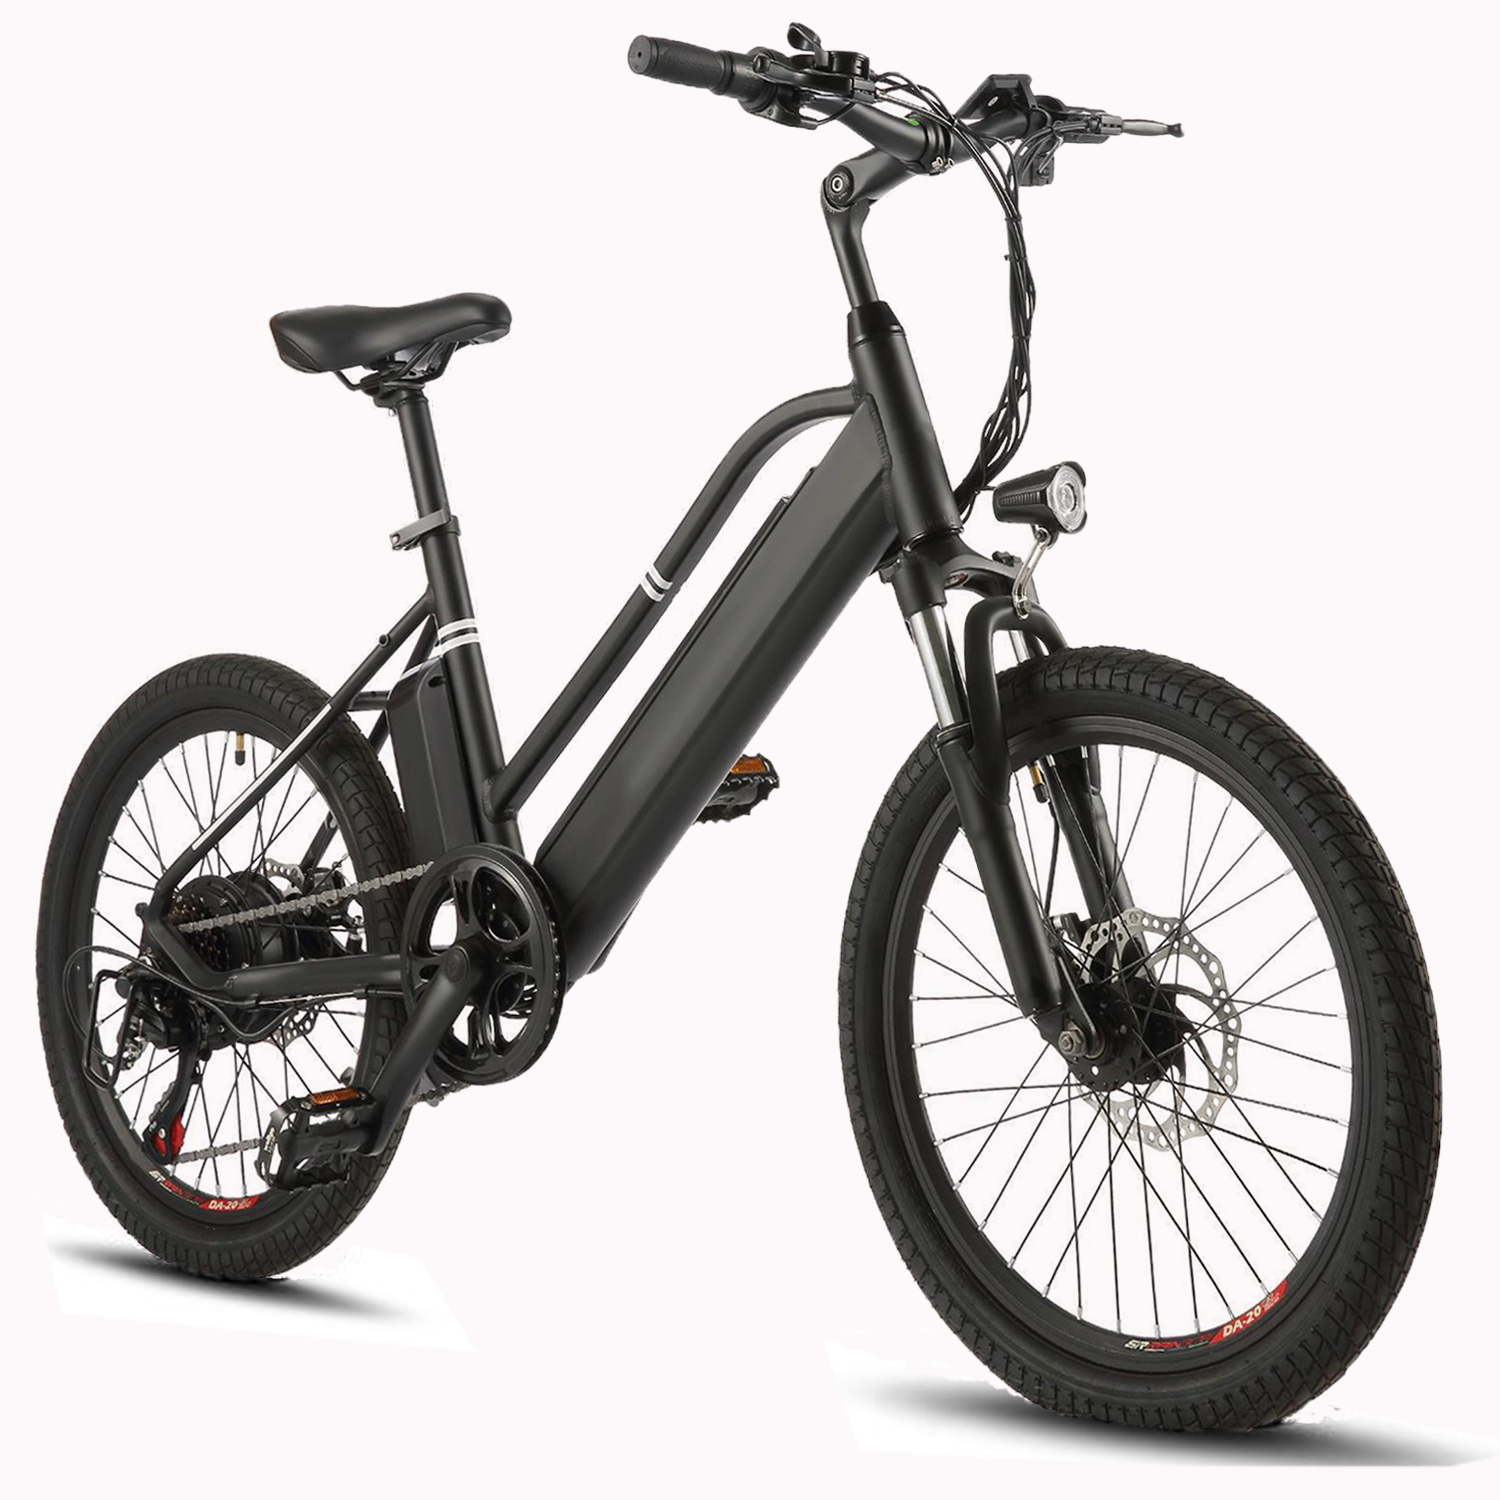 New Lithium Battery 350W//500W 36V 10Ah W// Charge for Electric Ebike City Bicycle